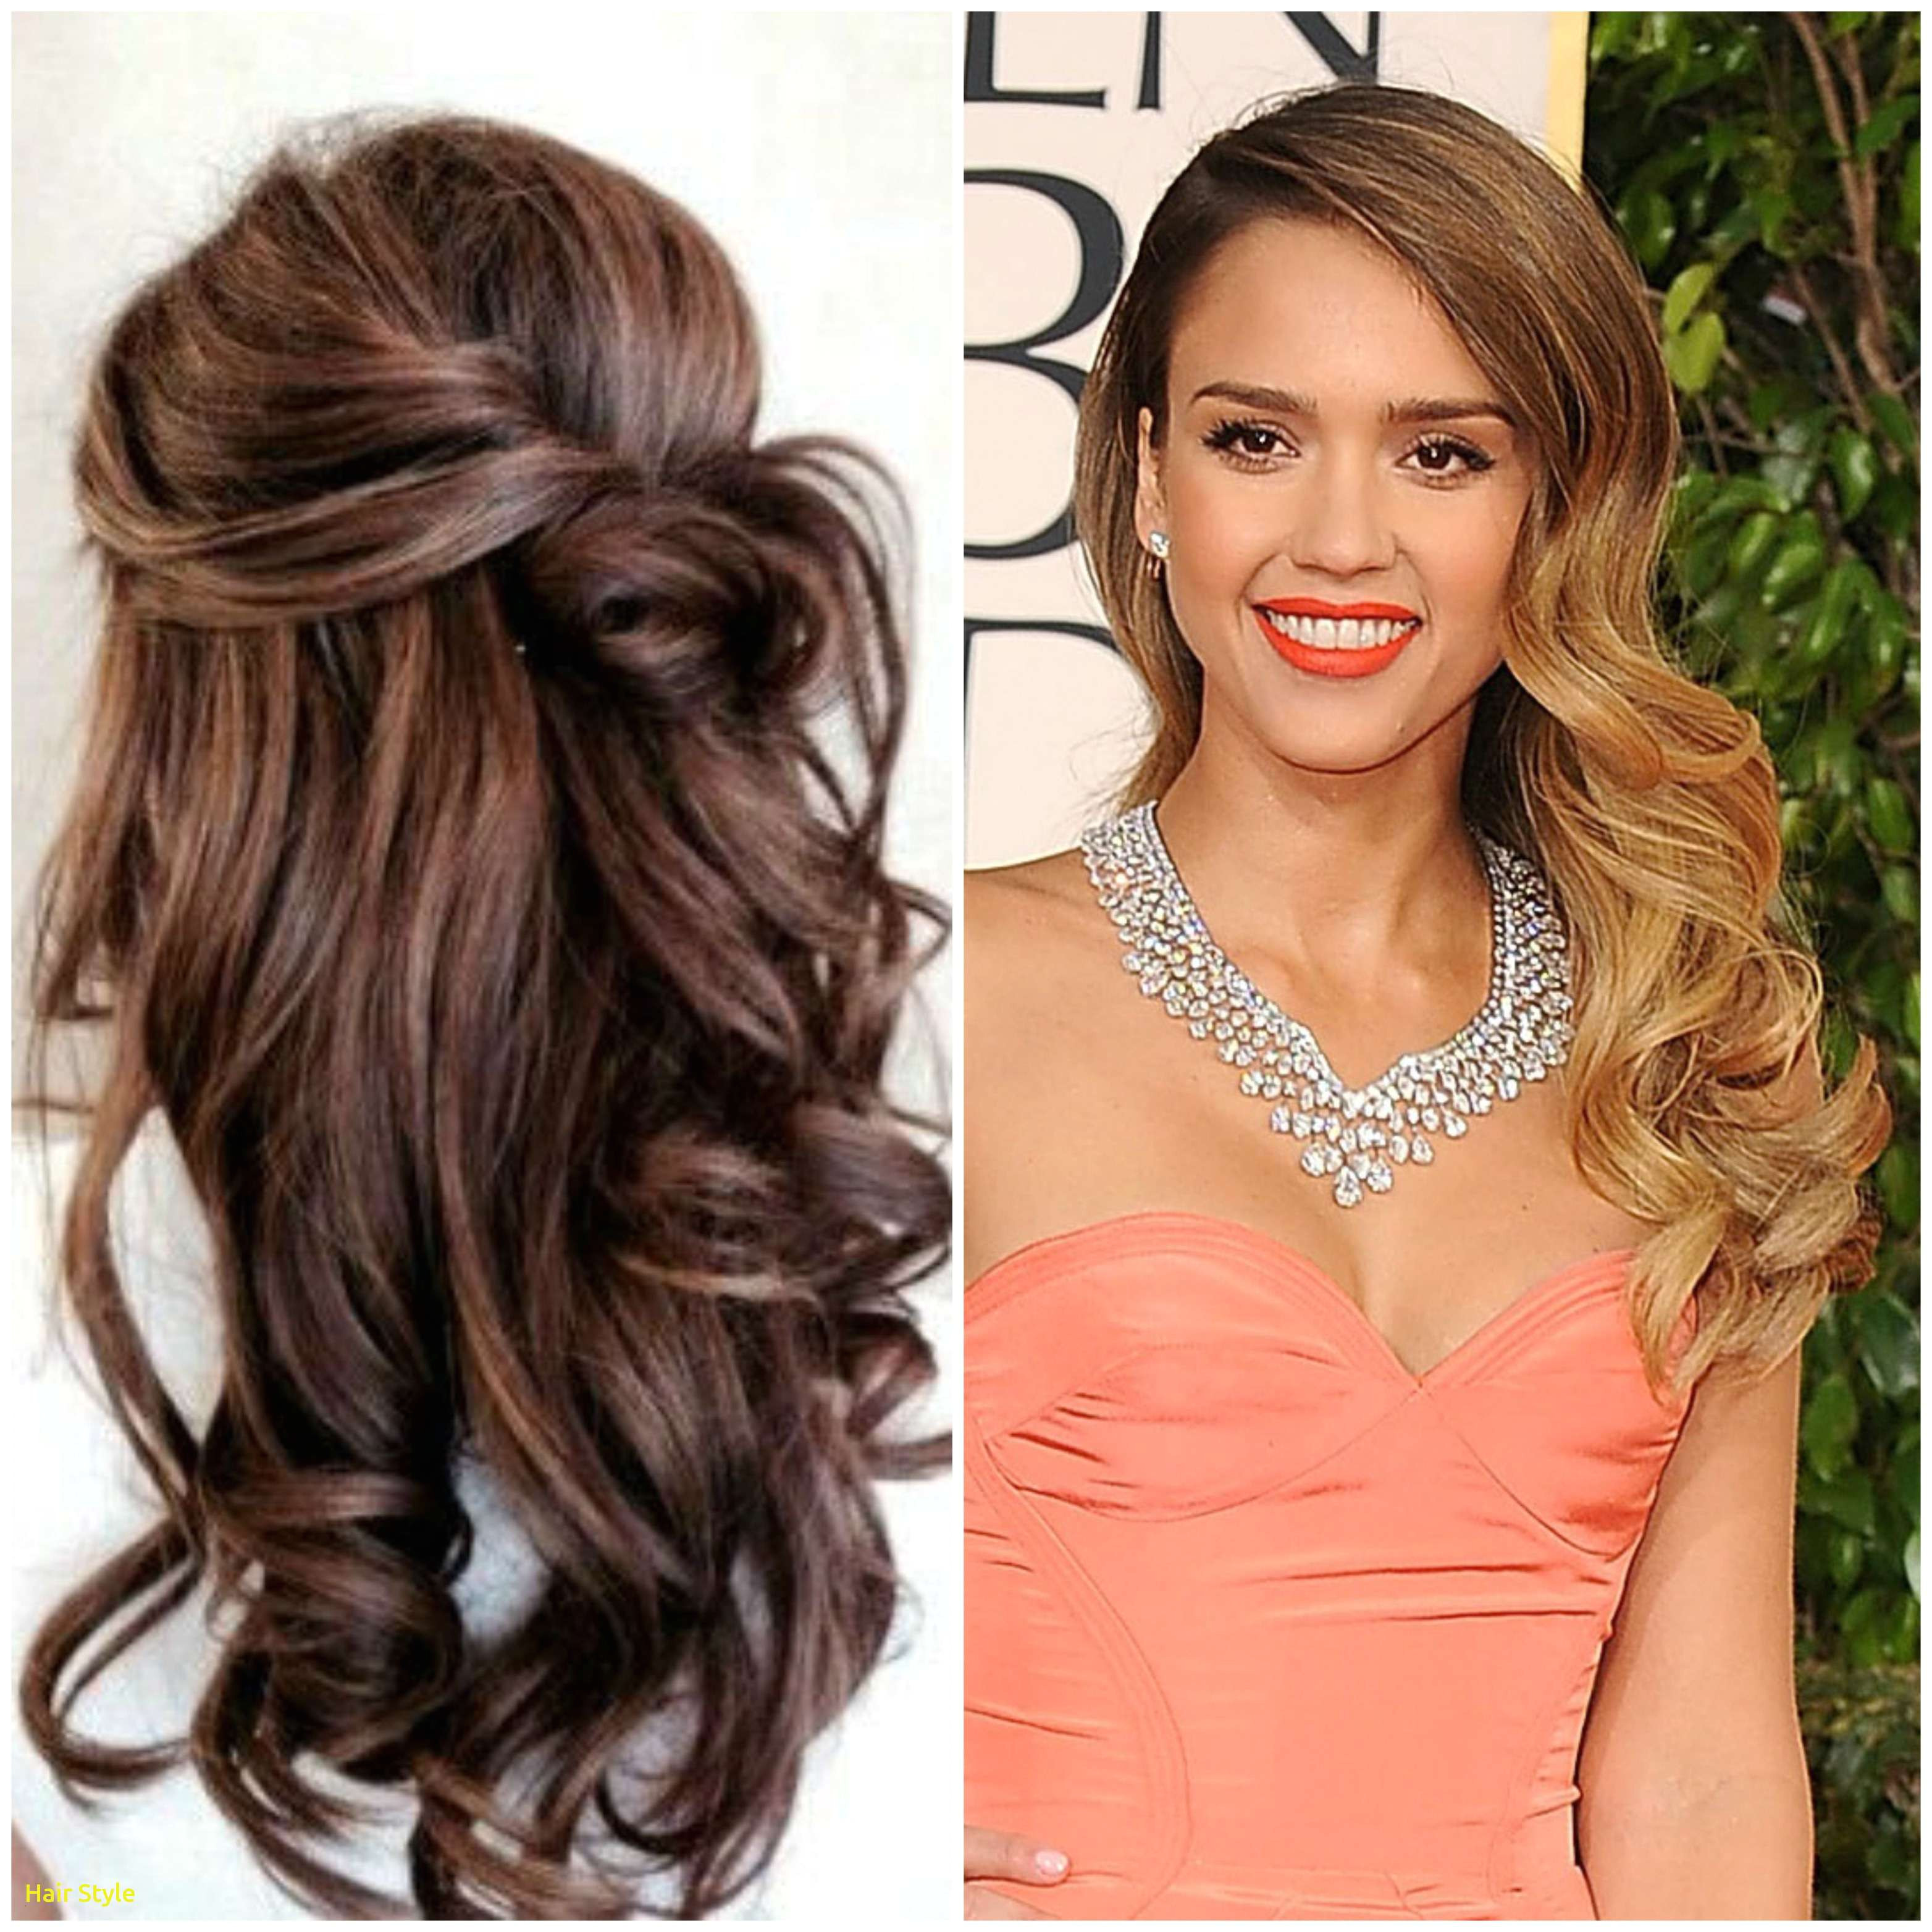 wedding hairstyles beautiful inspirational hairstyles for long hair 2015 luxury i pinimg 1200x 0d